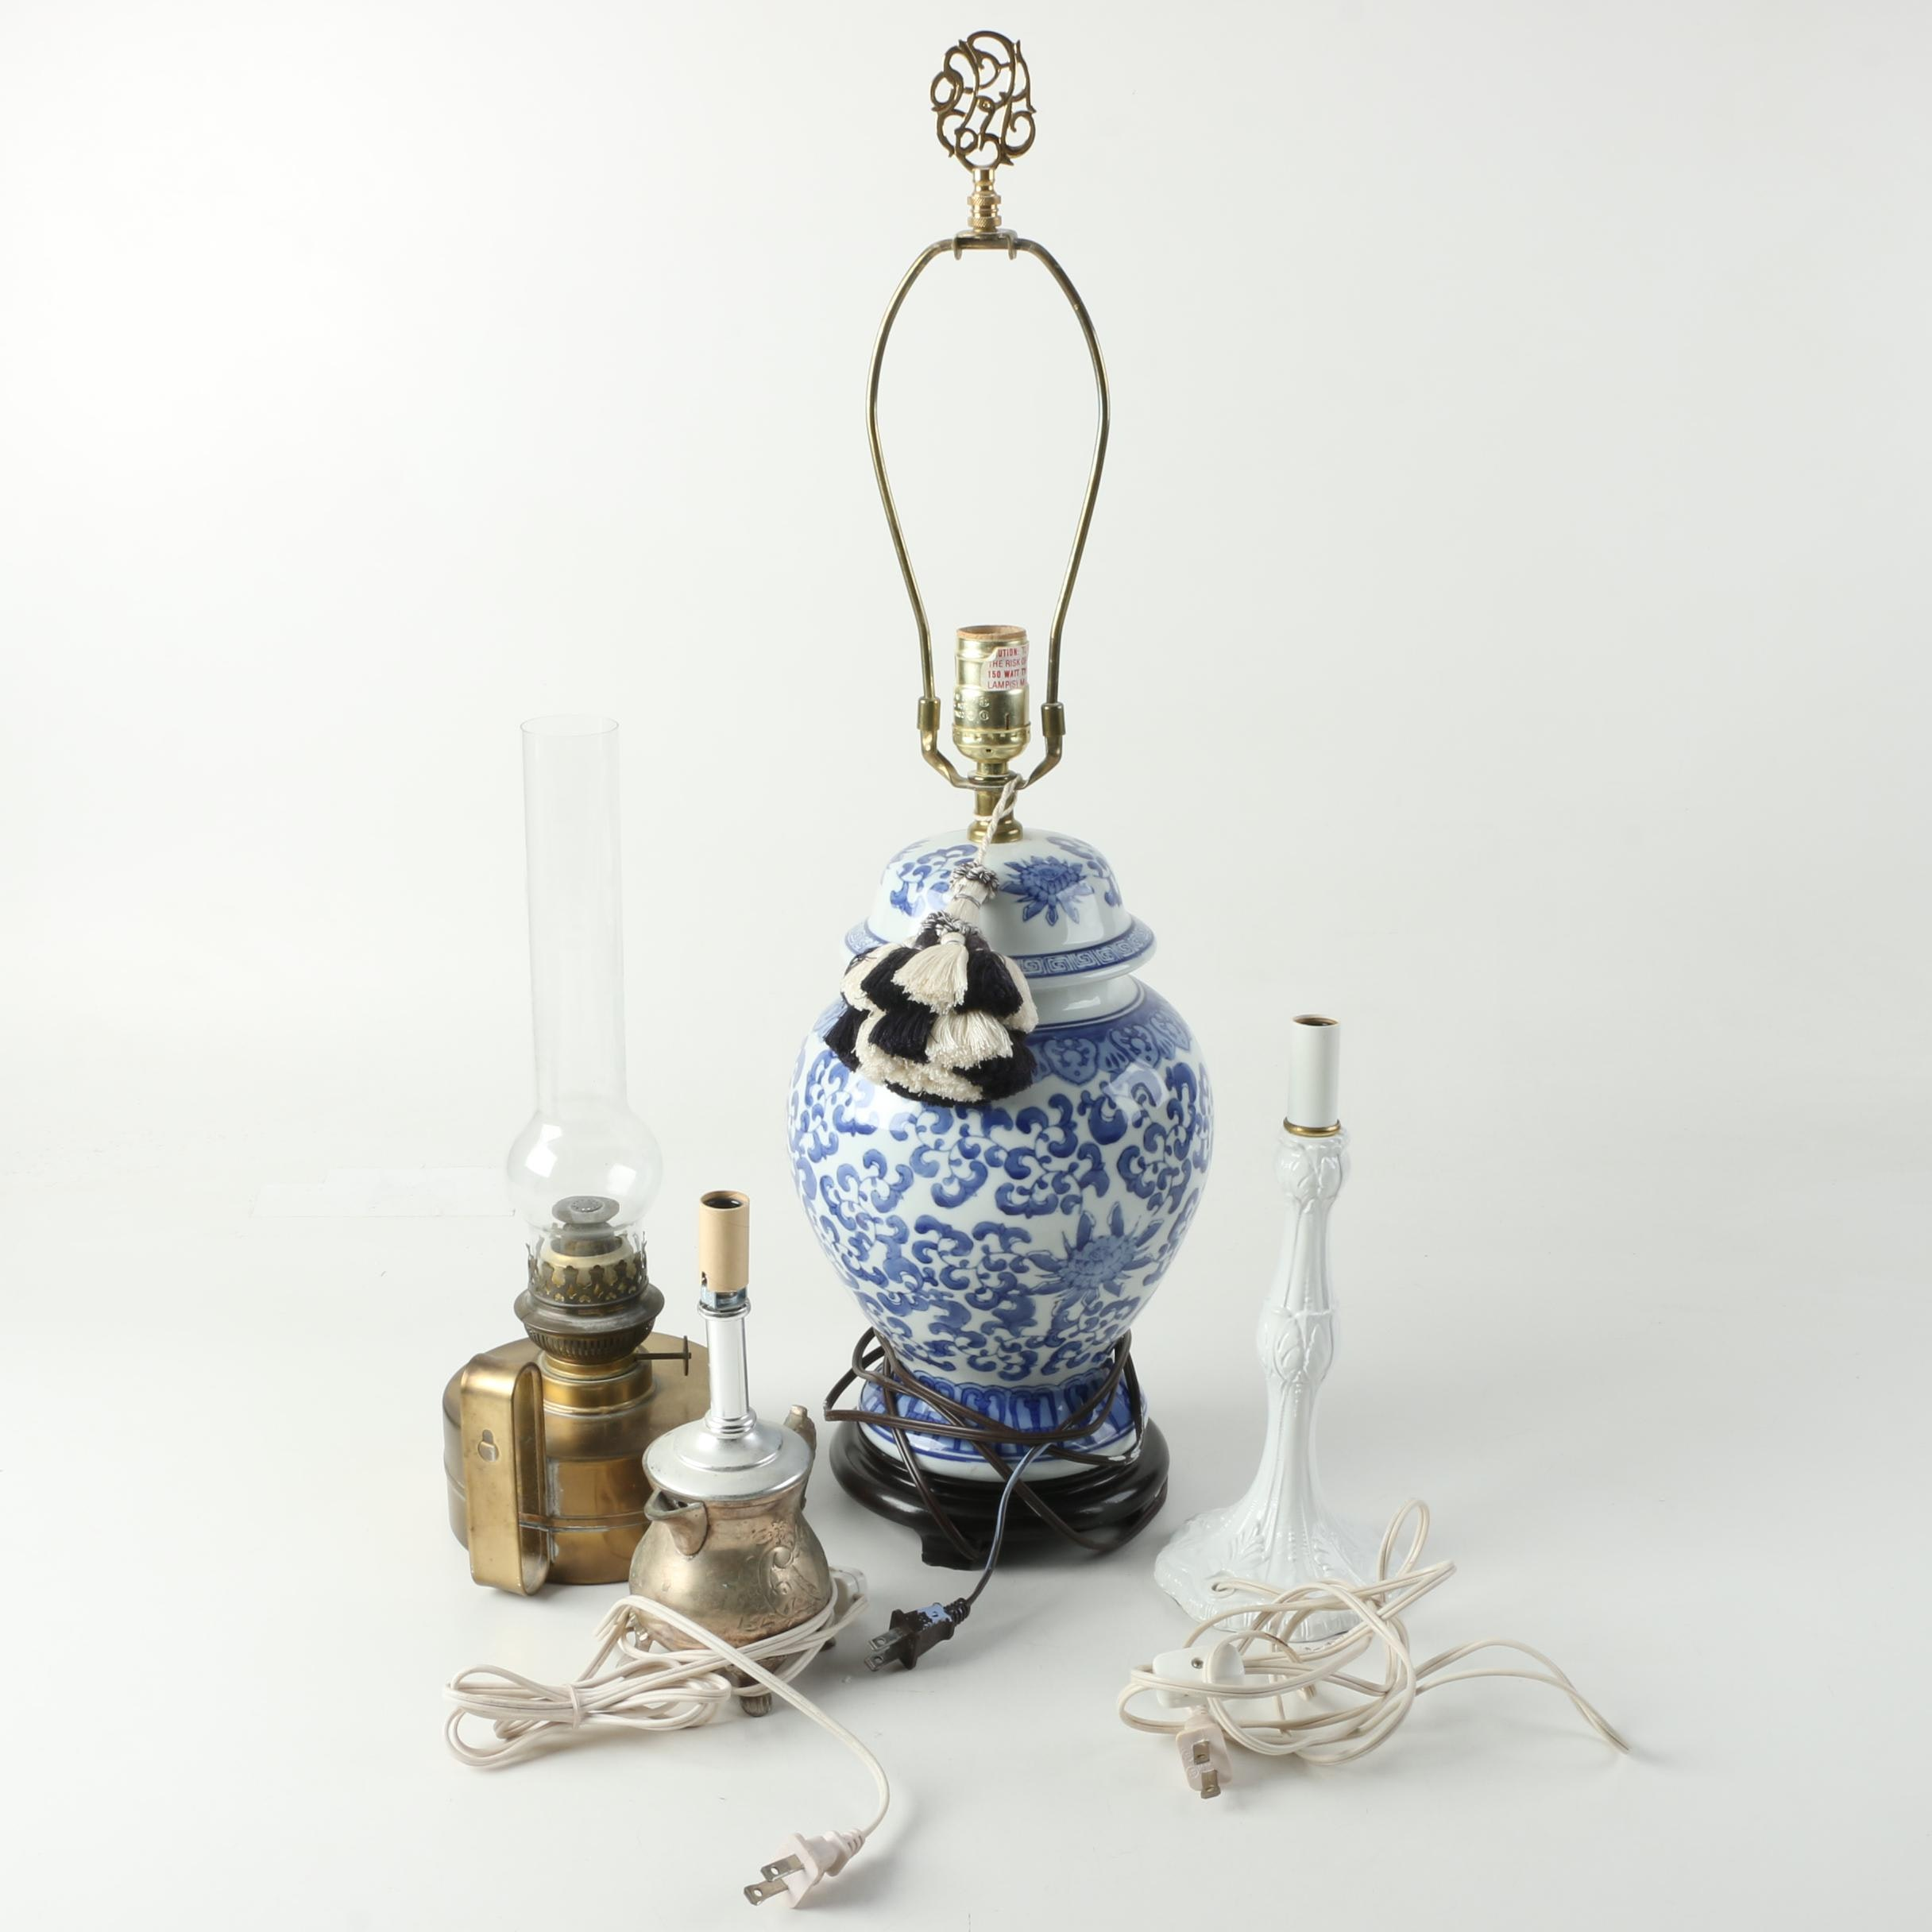 Group of Table Lamps